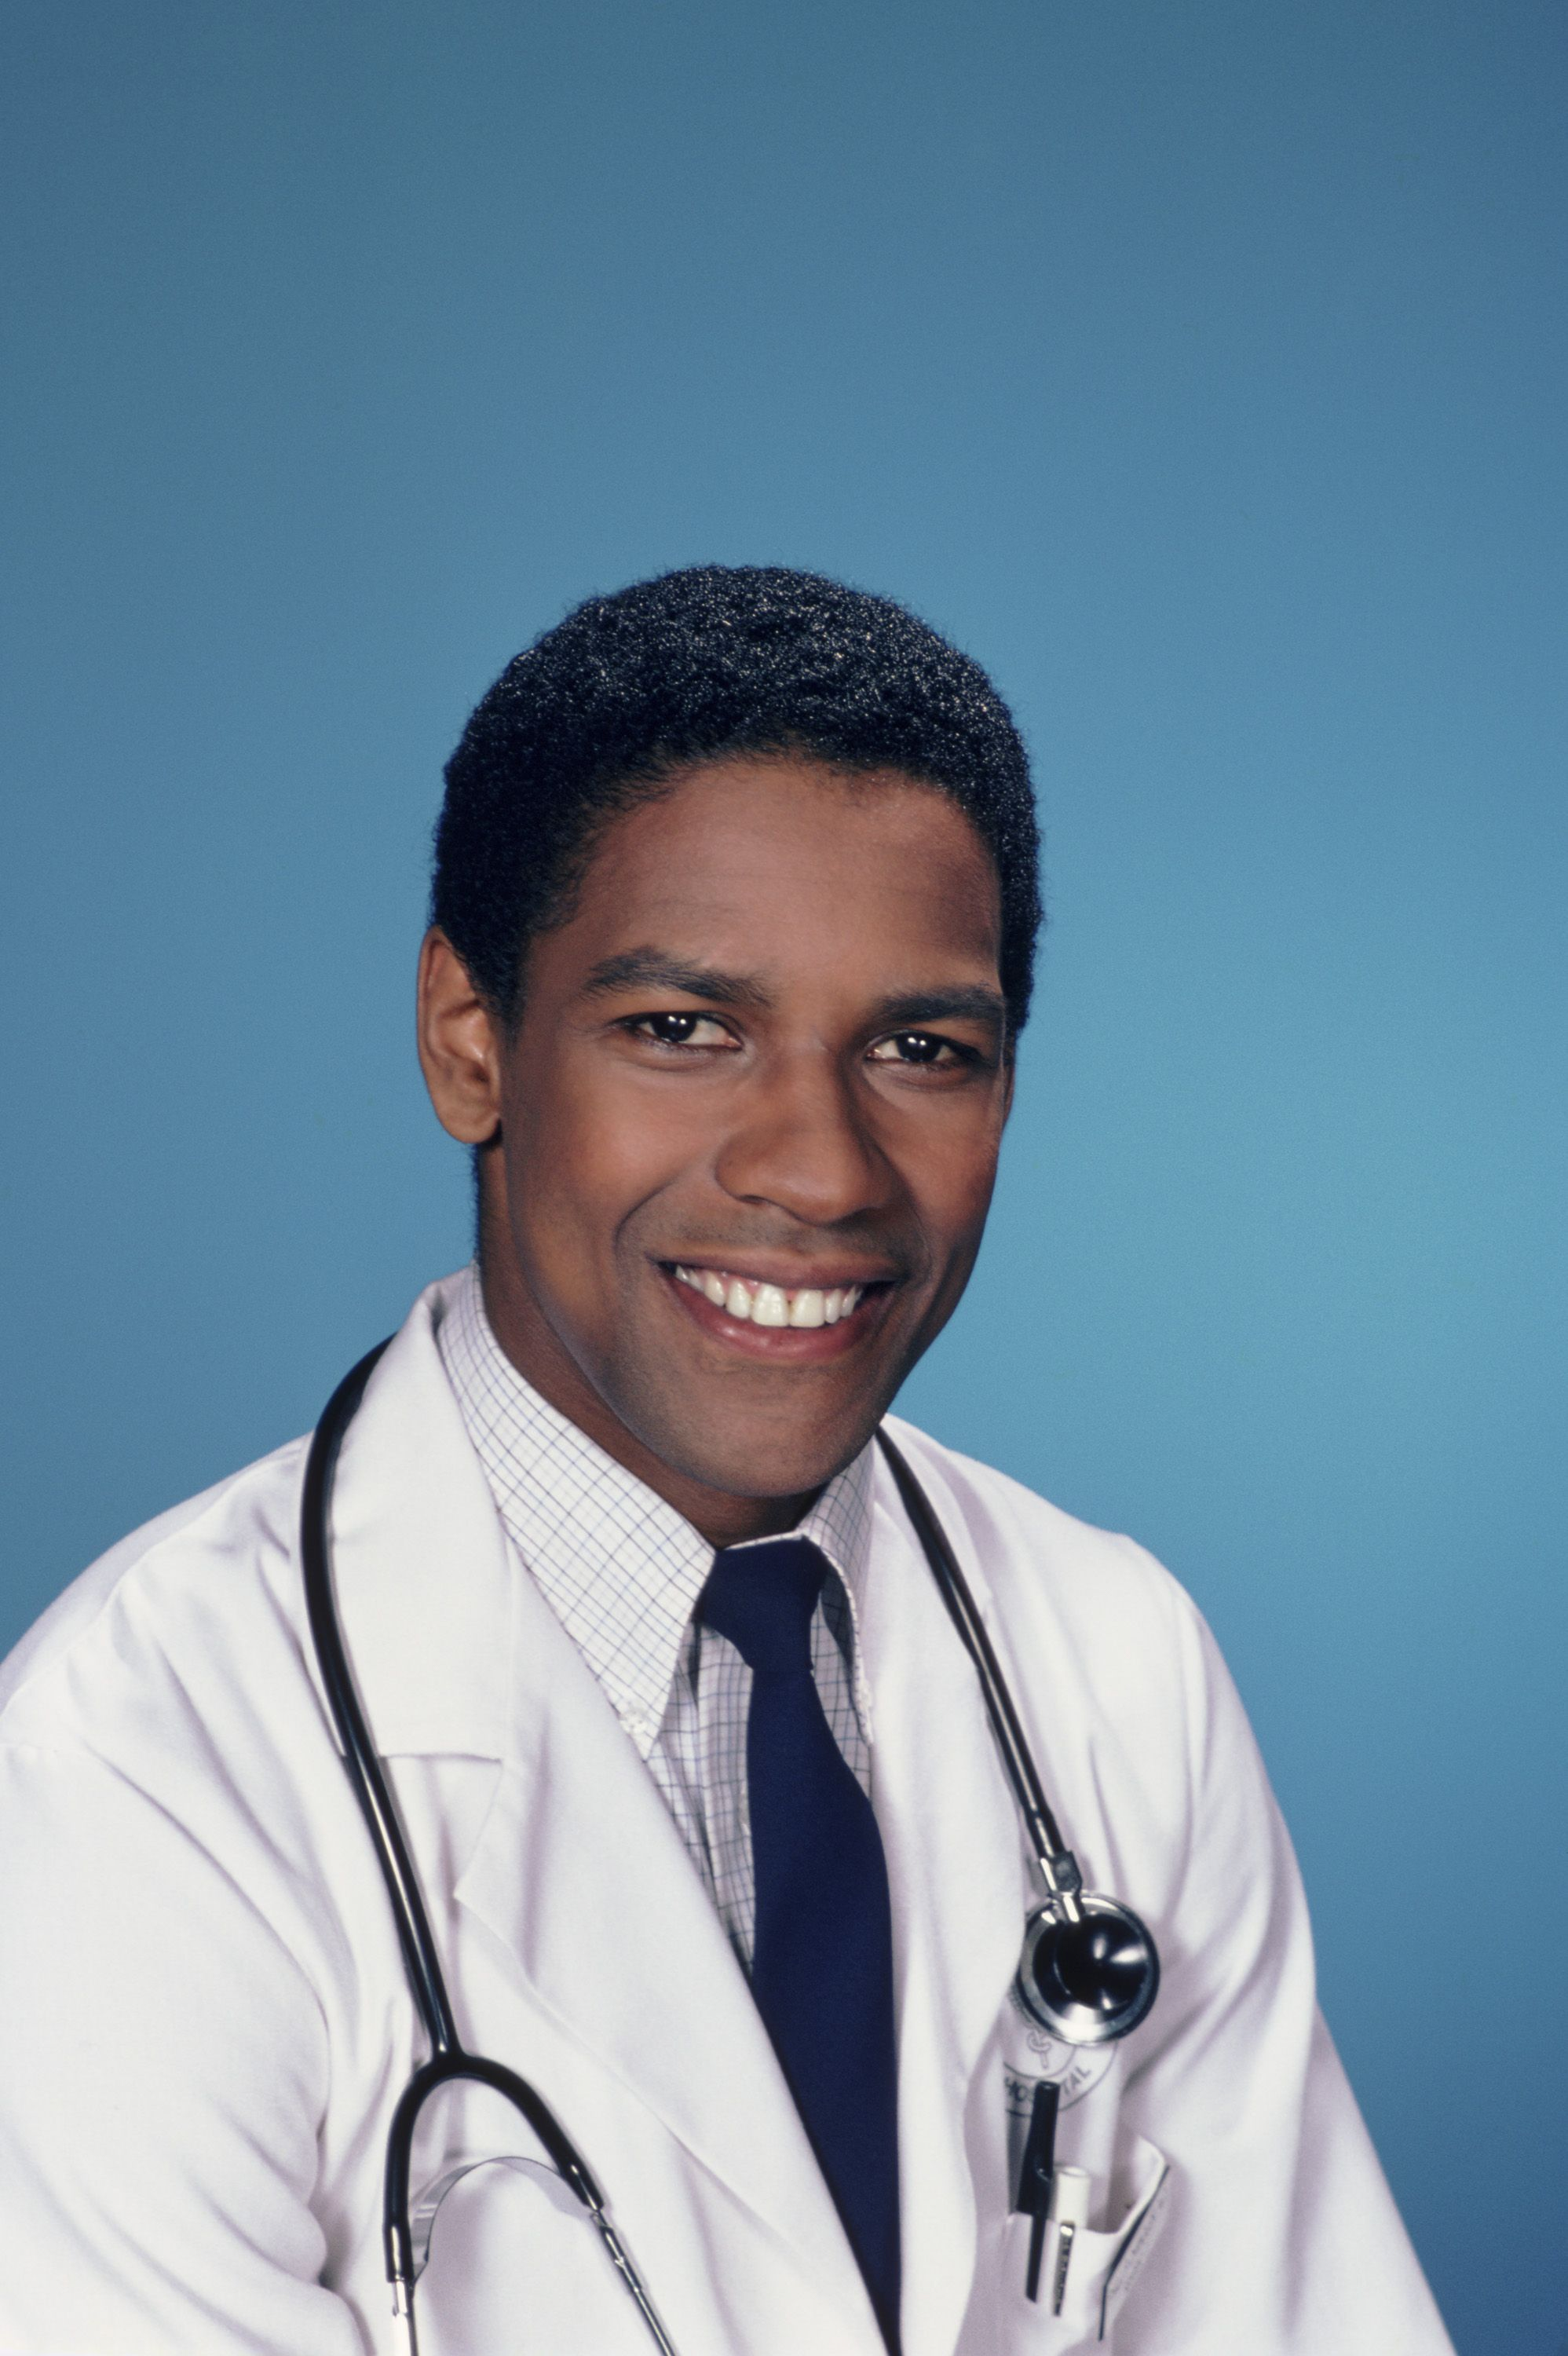 Denzel Washington at 29 Washington's big break came in the '80s, when he starred as Dr. Phillip Chandler in NBC's hospital drama St. Elsewhere.